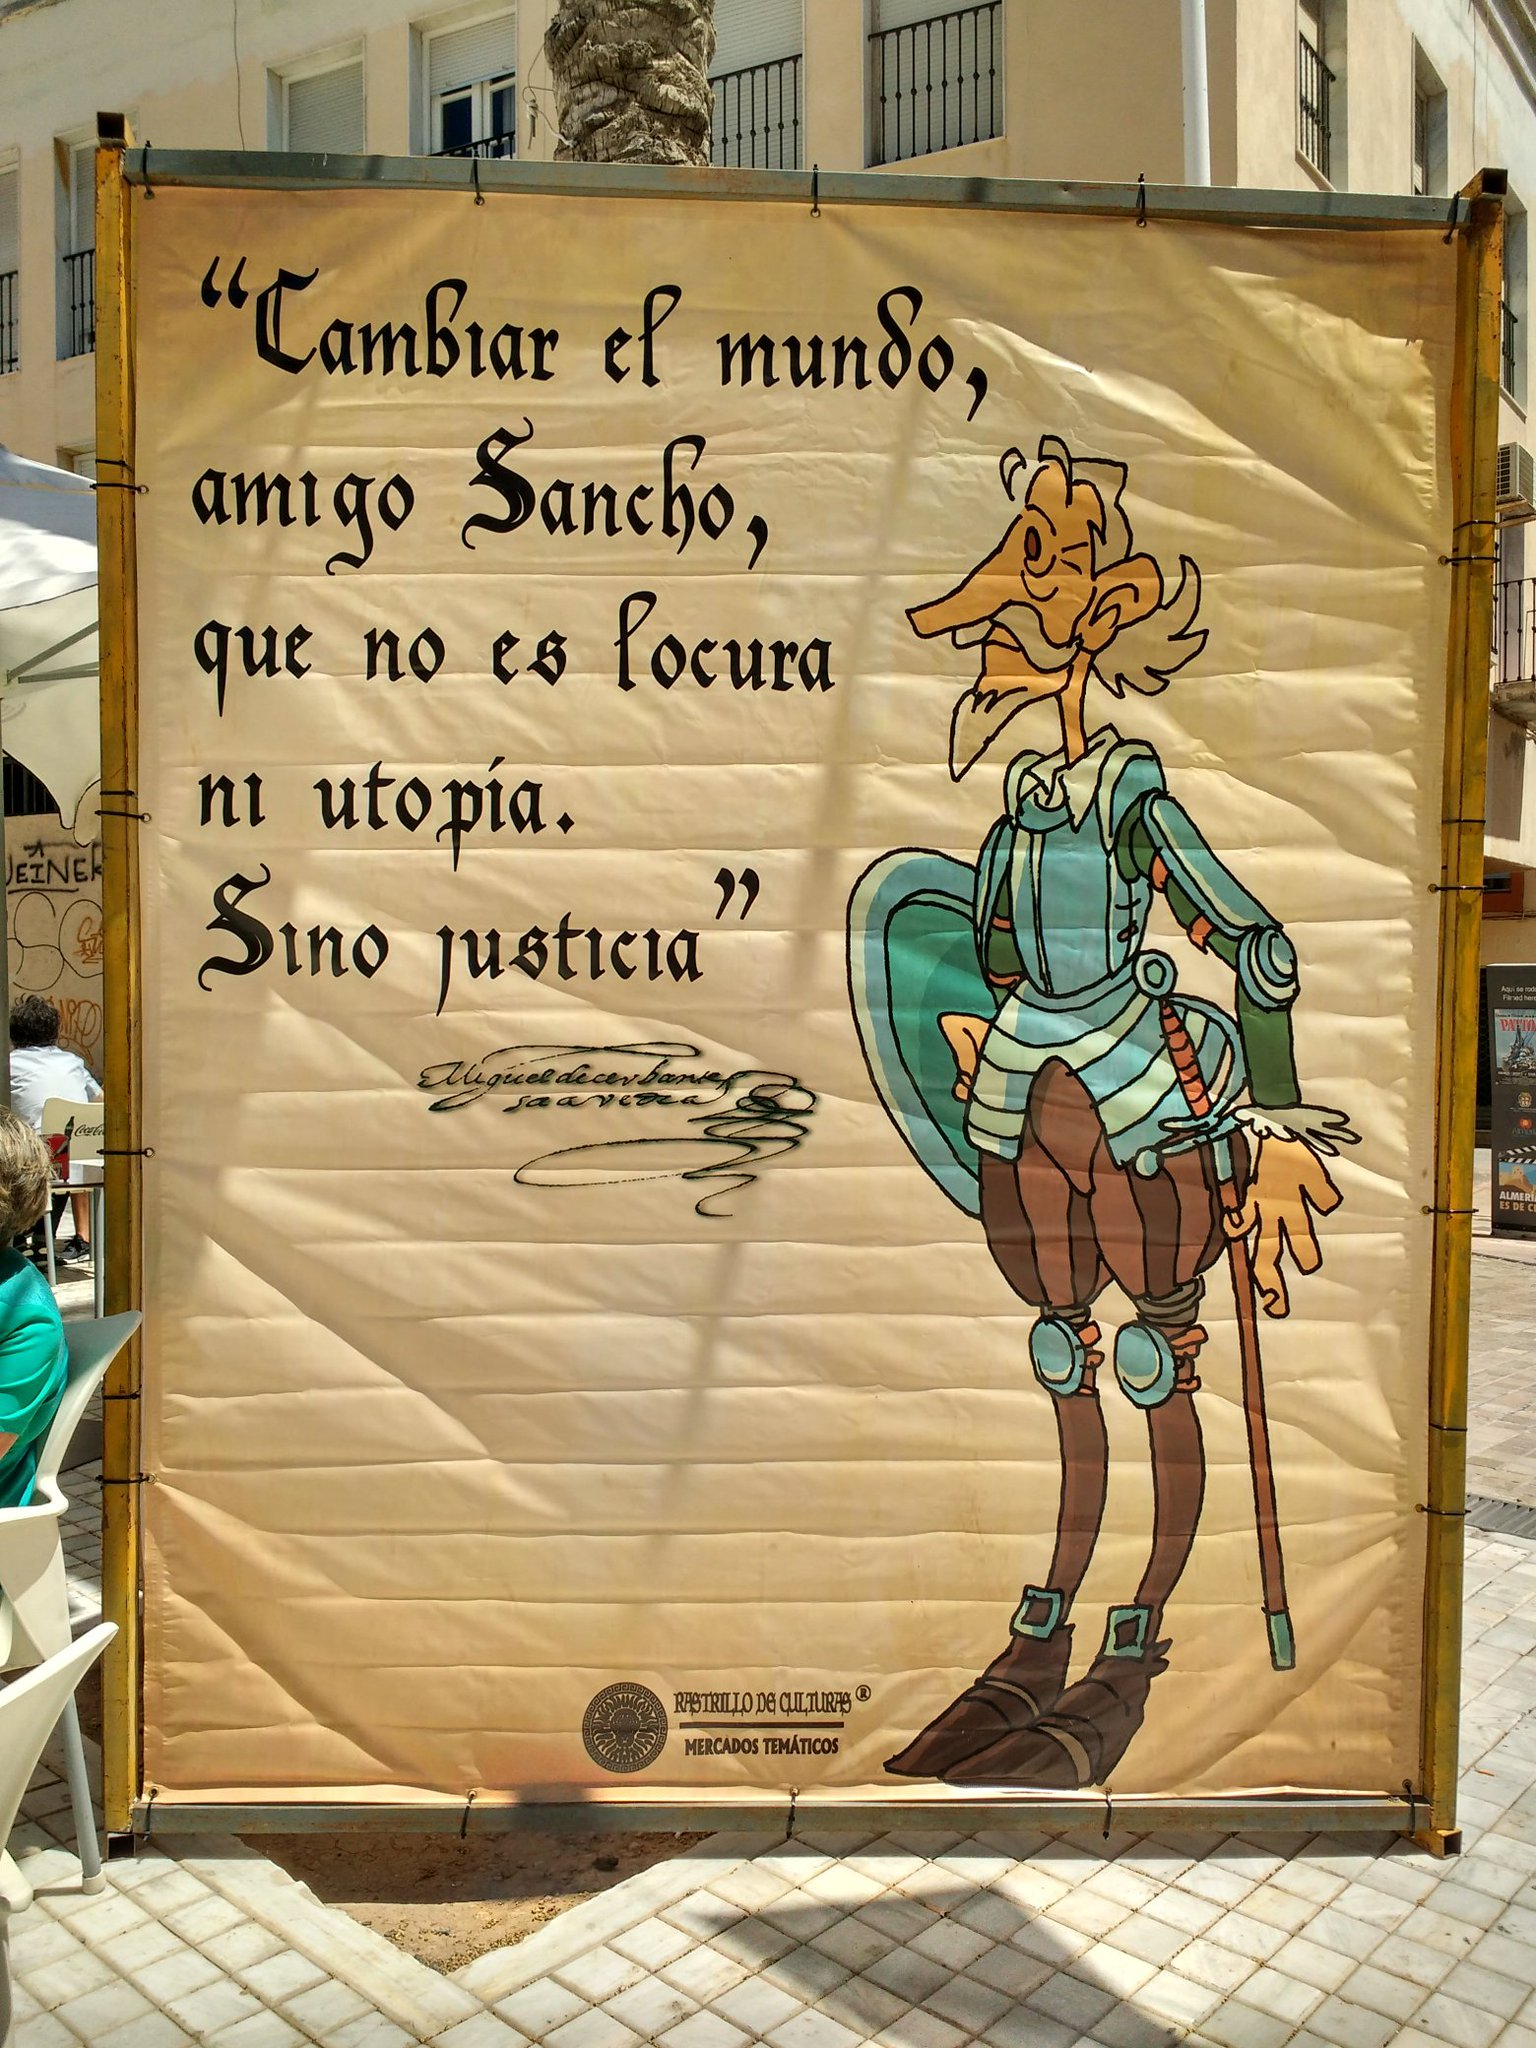 """To change the world, my friend Sancho, isn't madness nor utopia but justice"". Many-layered Don Quixote quote found today in Almería, España https://t.co/x8RB7hQwBB"